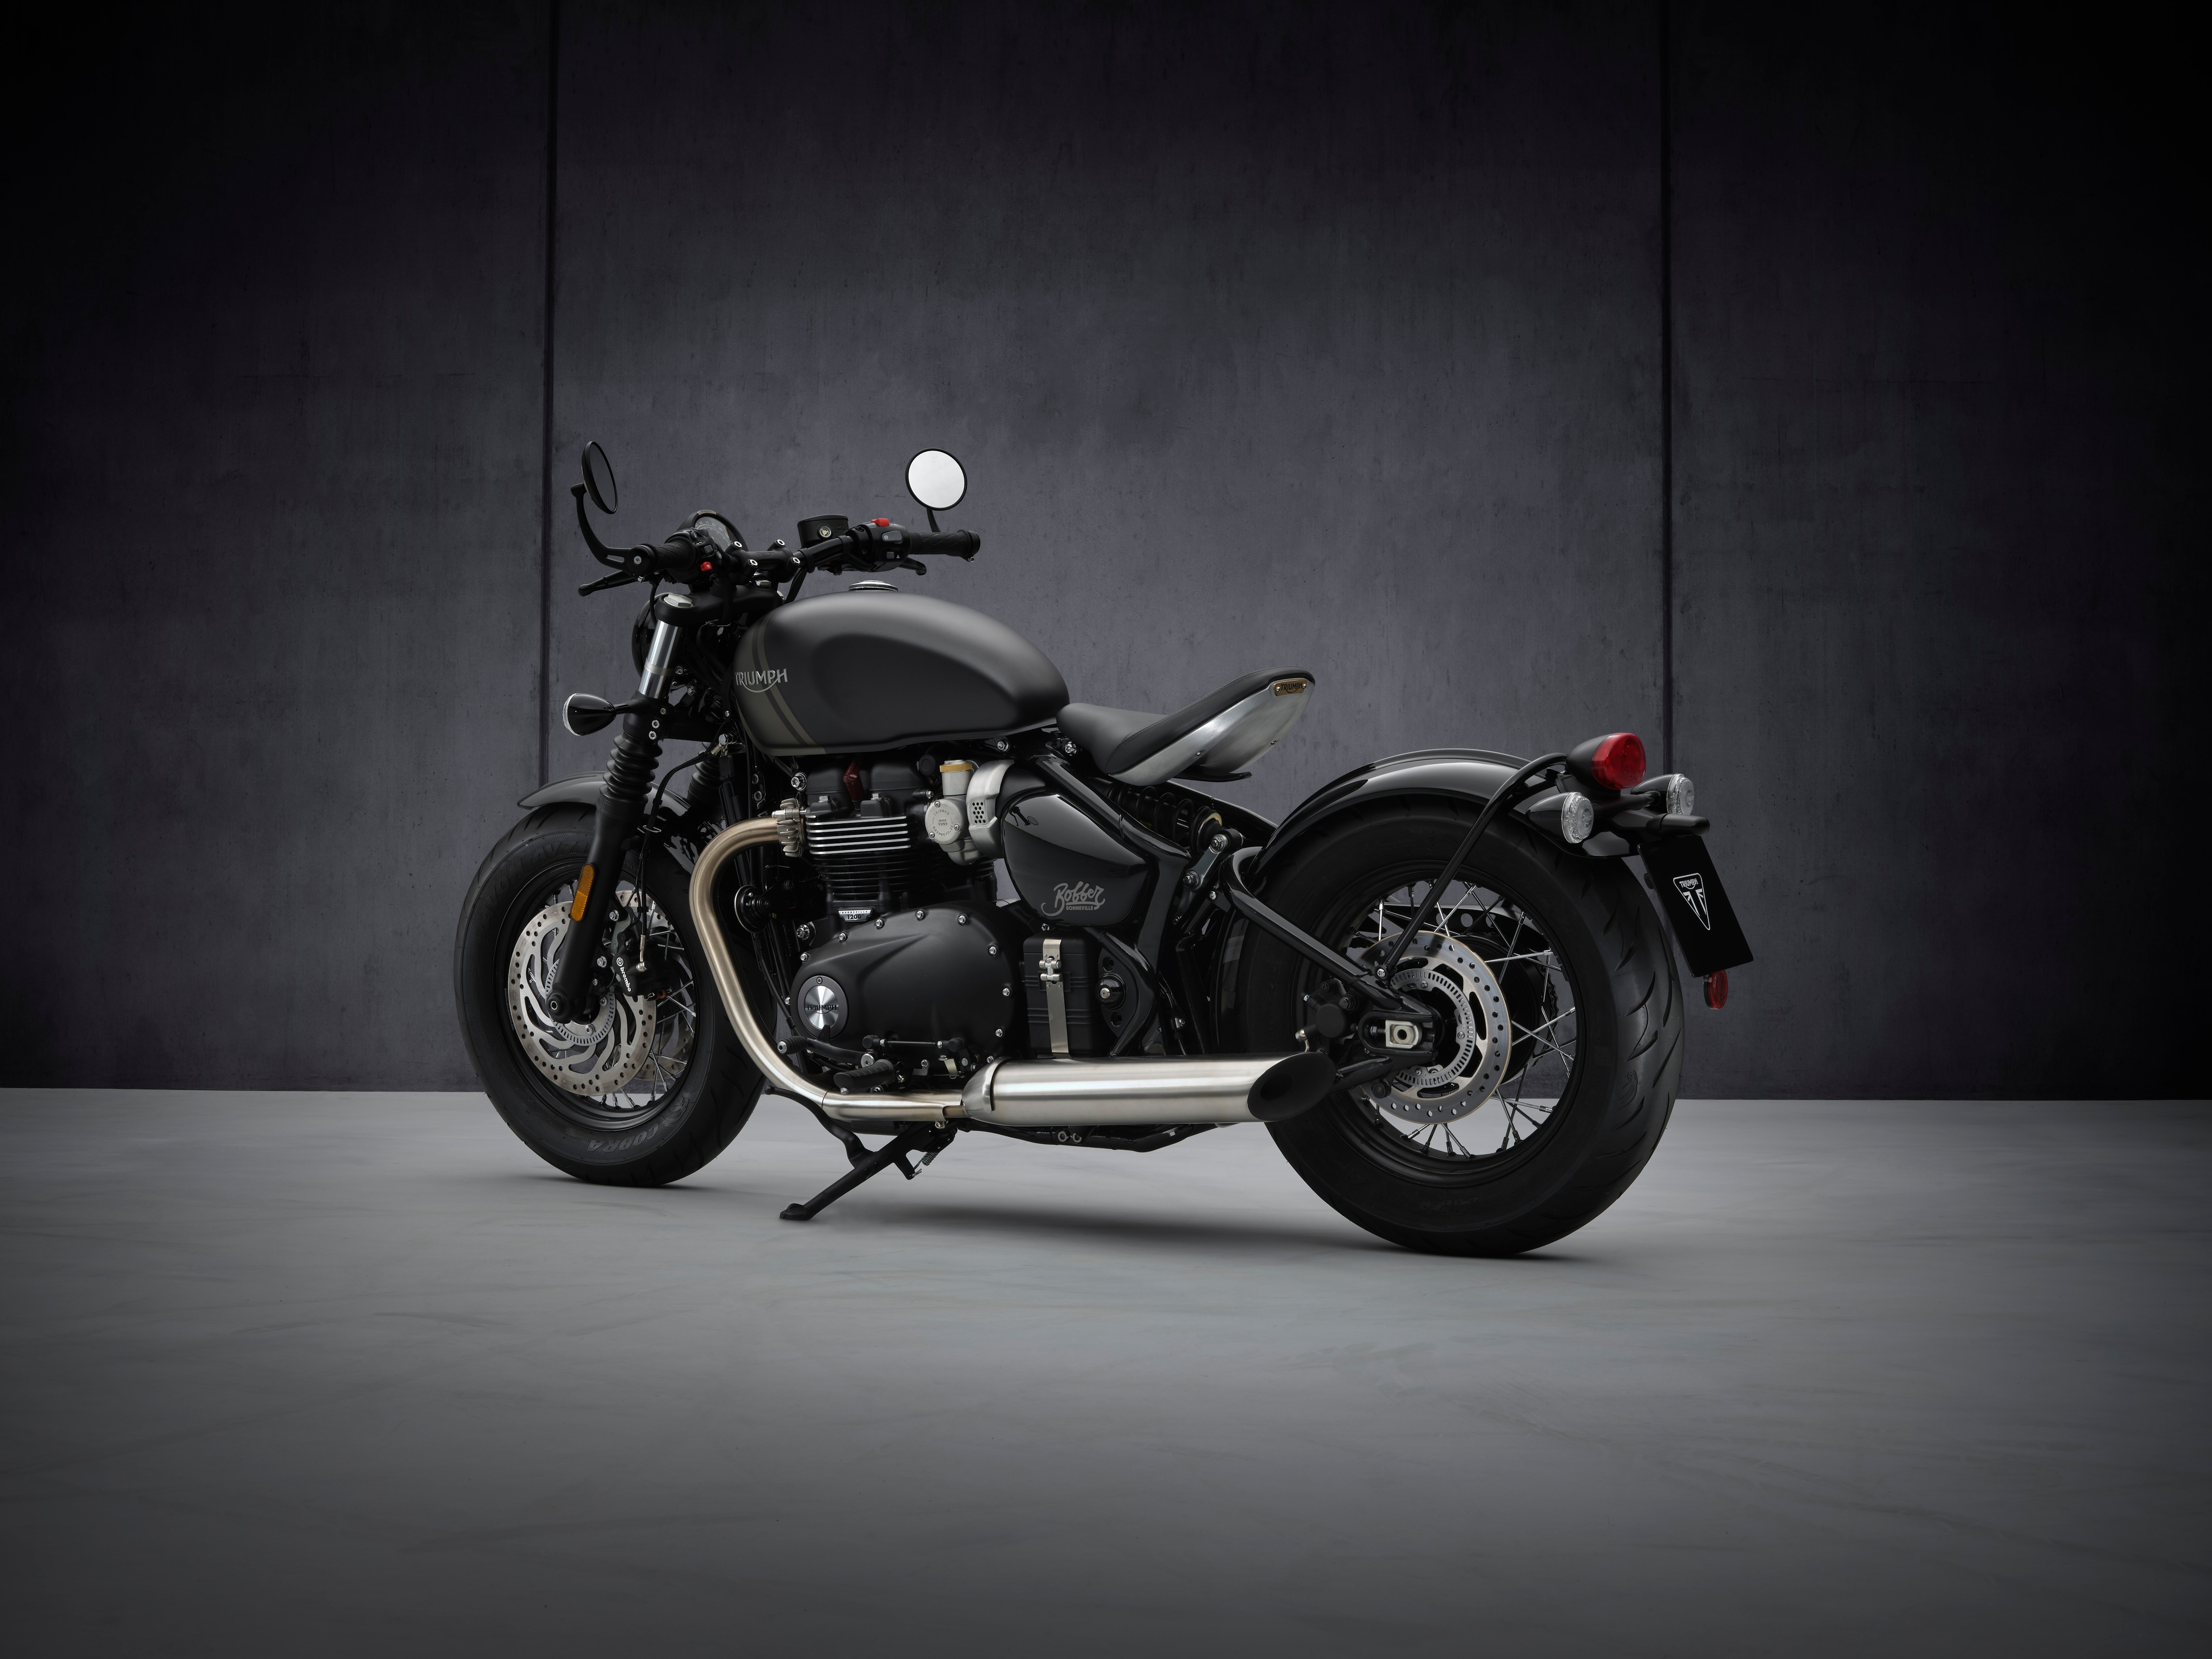 The new Bobber is offered with a Euro 5-compliant 1200cc, high-torque British twin engine. Output from this engine stands at 106Nm and 78PS.